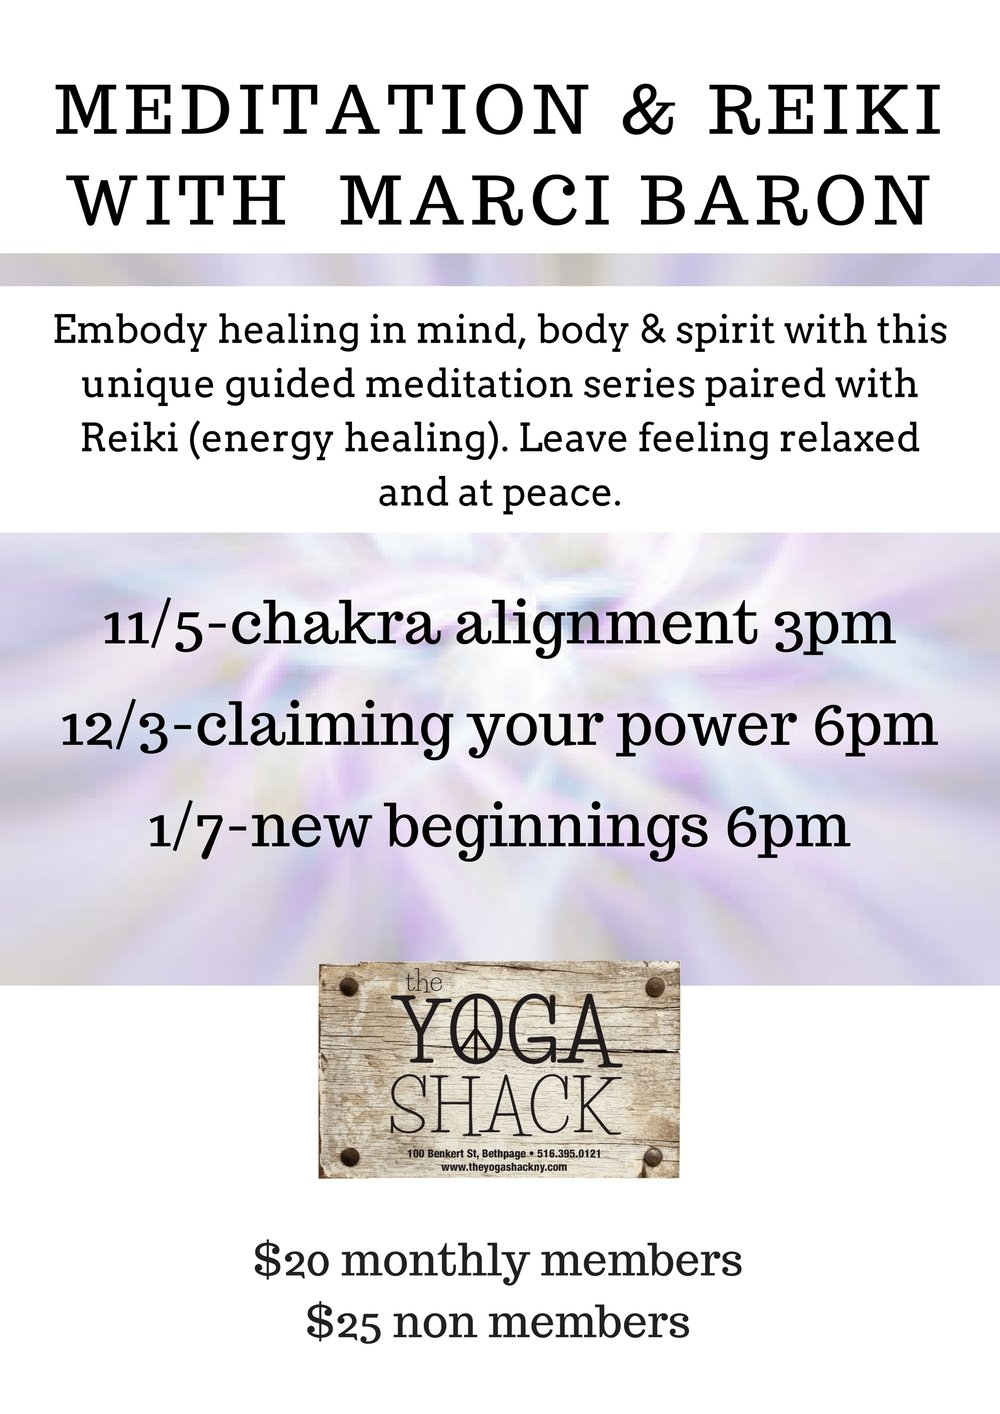 Meditation & Reiki with marci baron (1).jpg